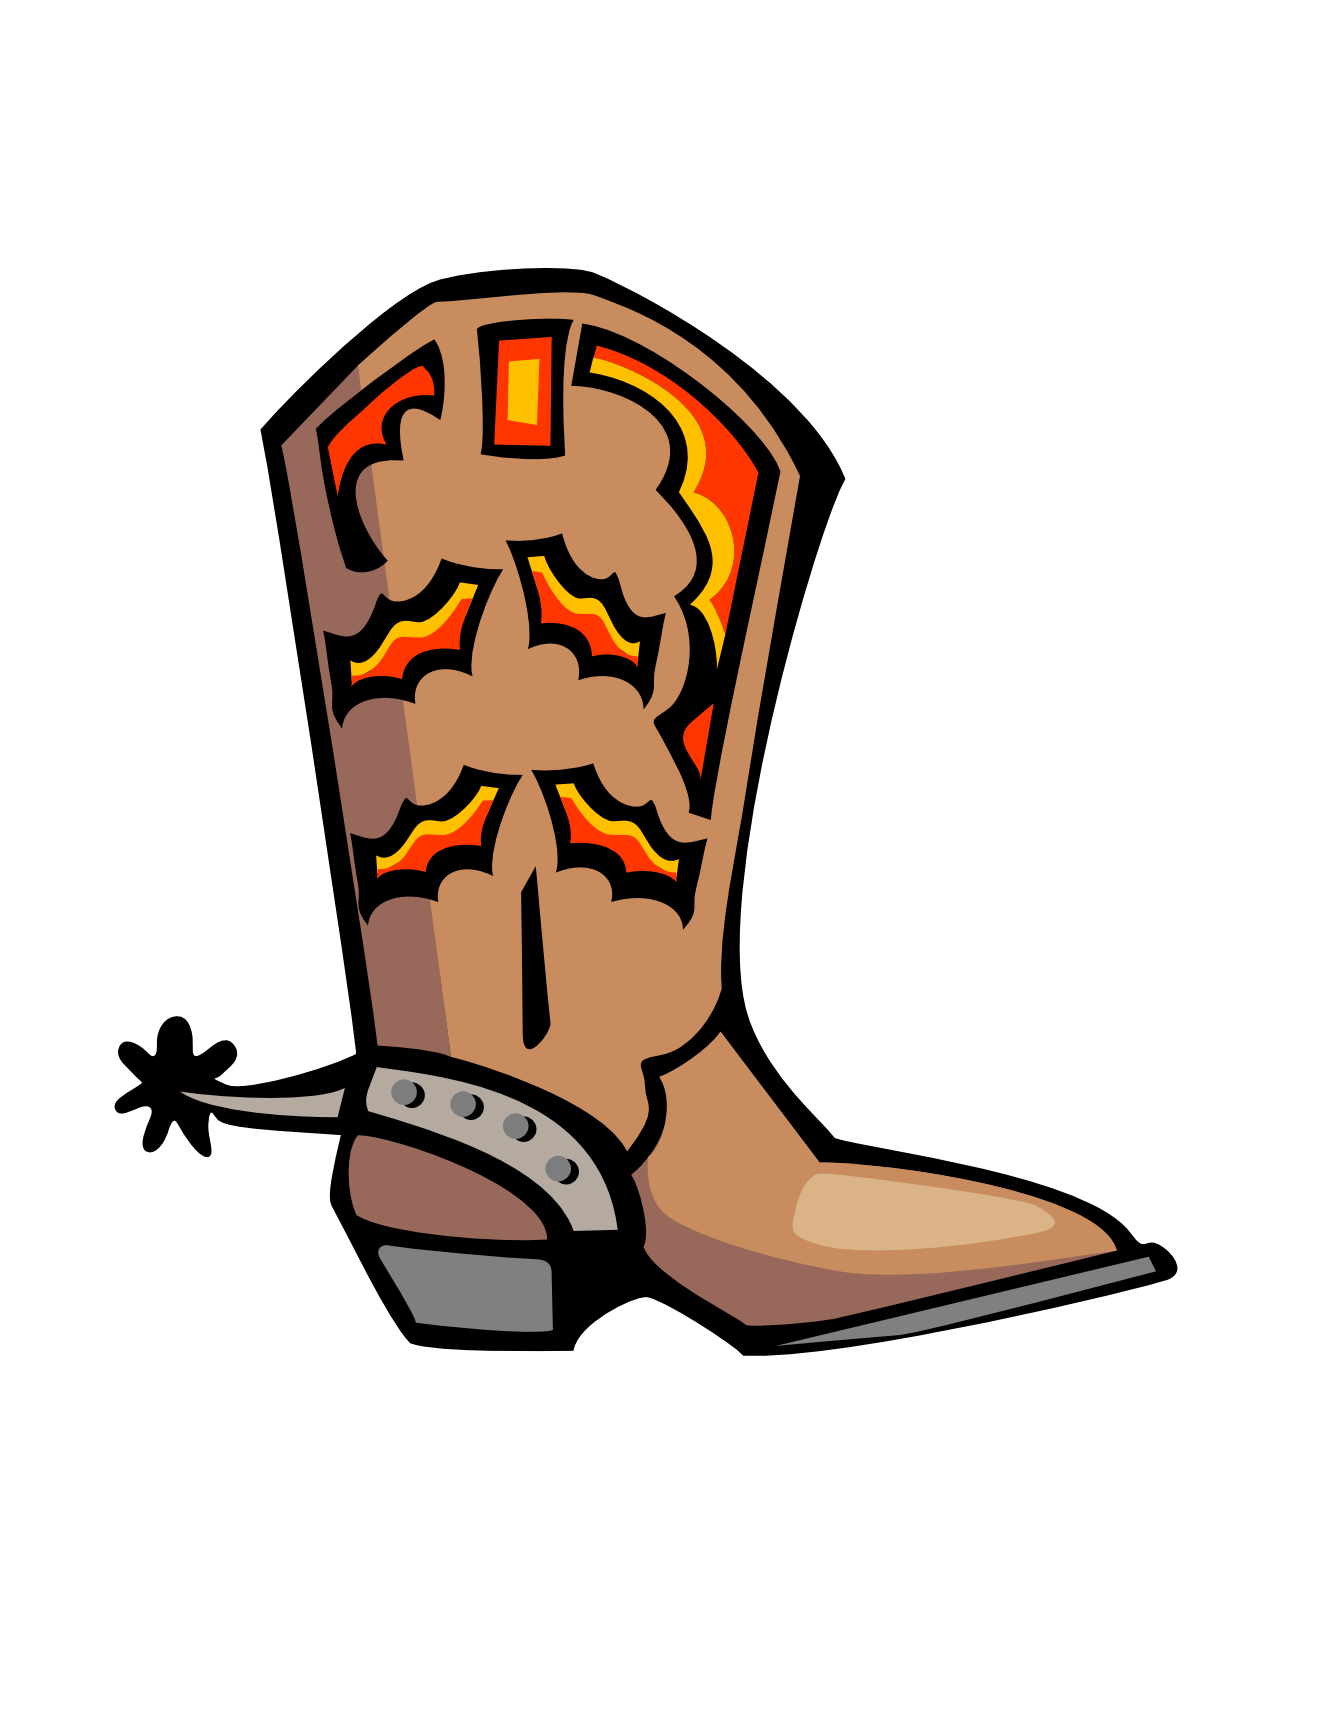 Free Cowboy Boot Images, Download Free Clip Art, Free Clip.